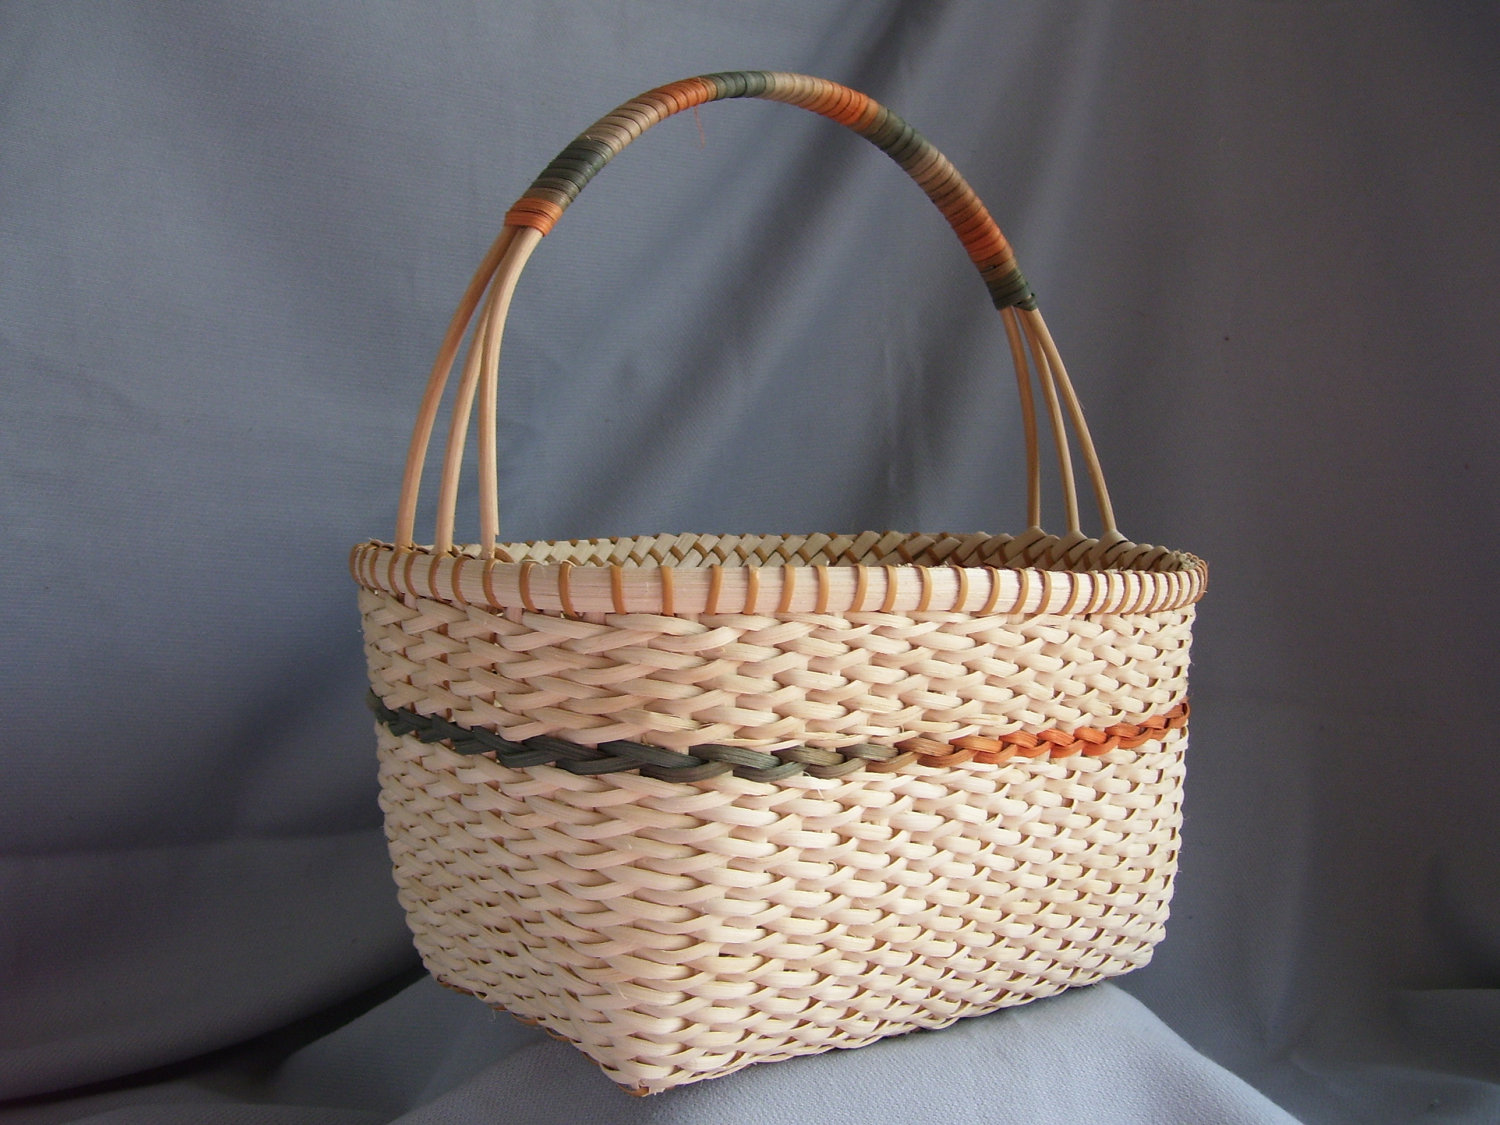 Knitting Basket With Handles : Jeri s organizing decluttering news with